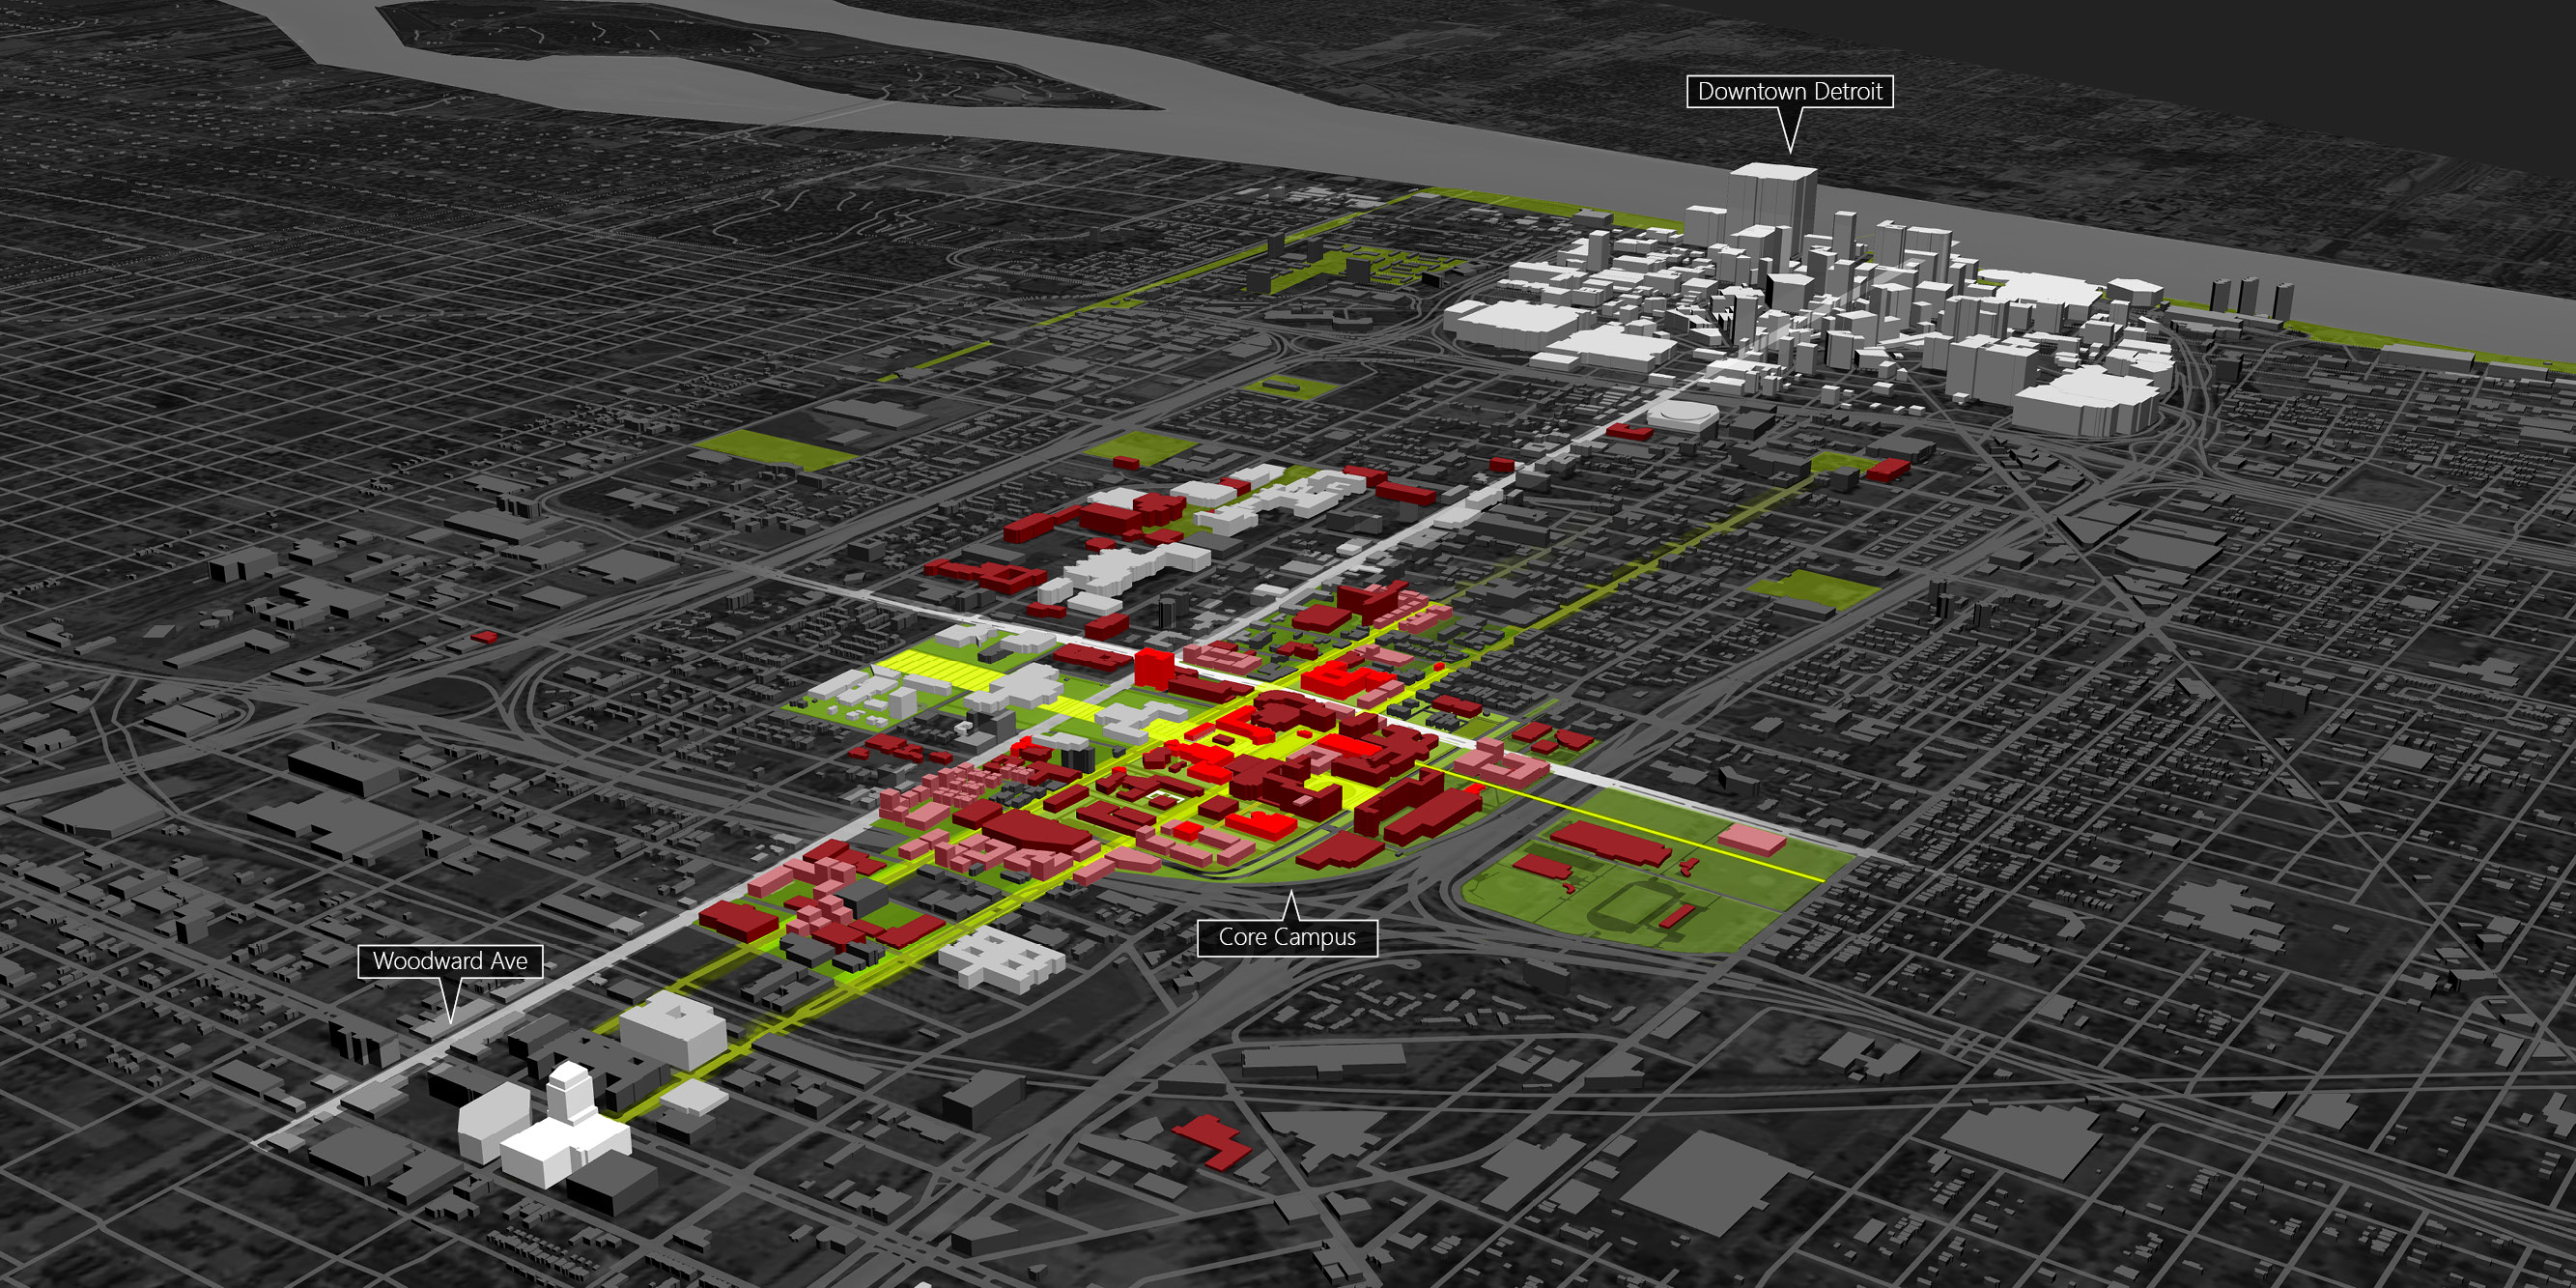 wayne state university campus-wide space analysis and master plan